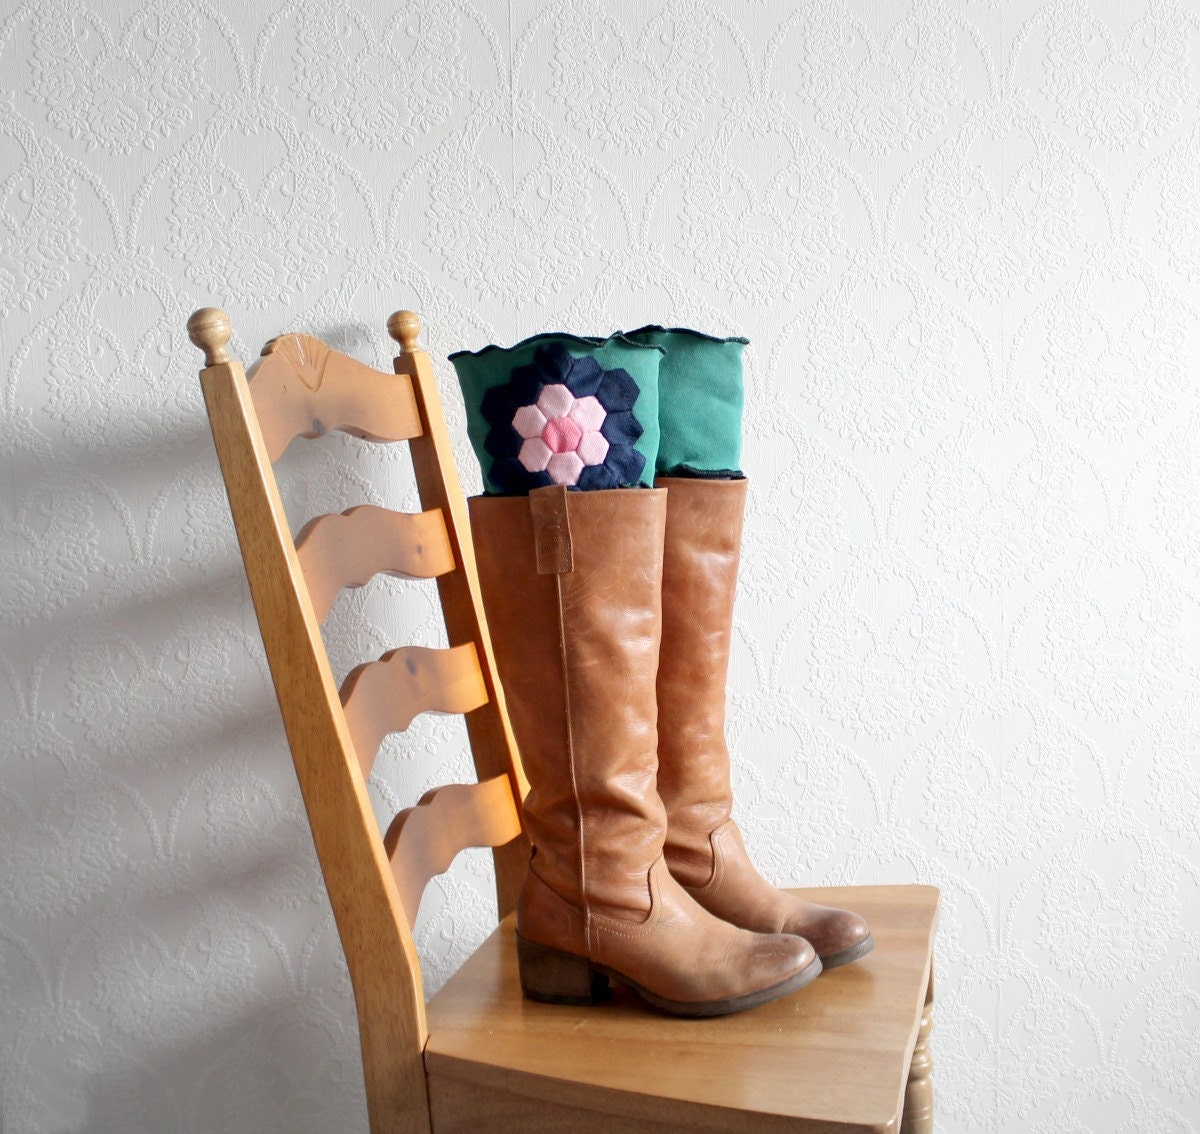 foto 15 Pairs of Chic Socks to Wear With Boots ThisWinter